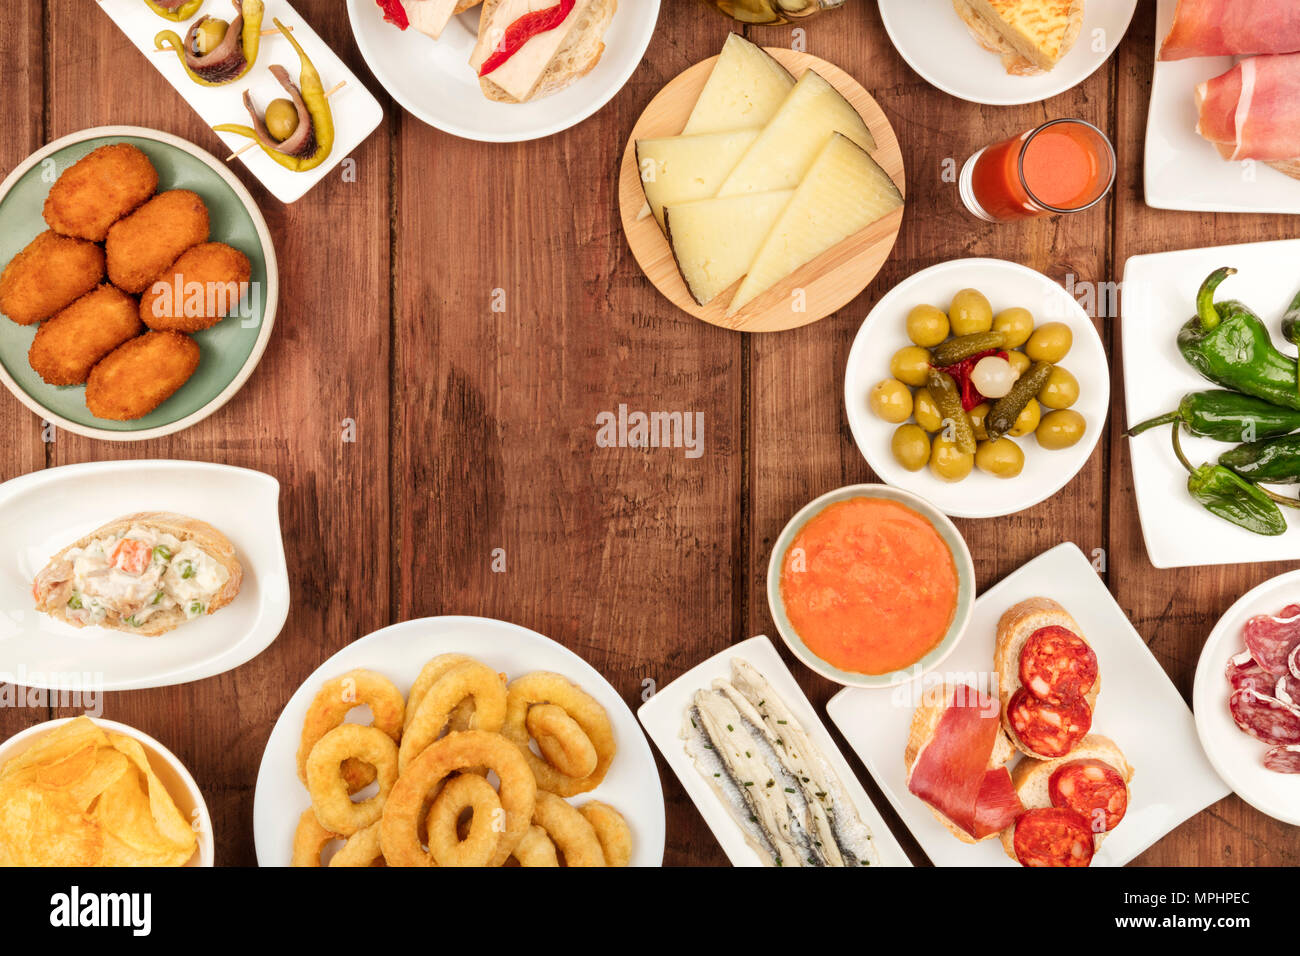 Food of Spain. An overhead photo of many different Spanish tapas, shot from above on a dark rustic texture. Gazpacho, cheese, olives, croquettes, boqu - Stock Image